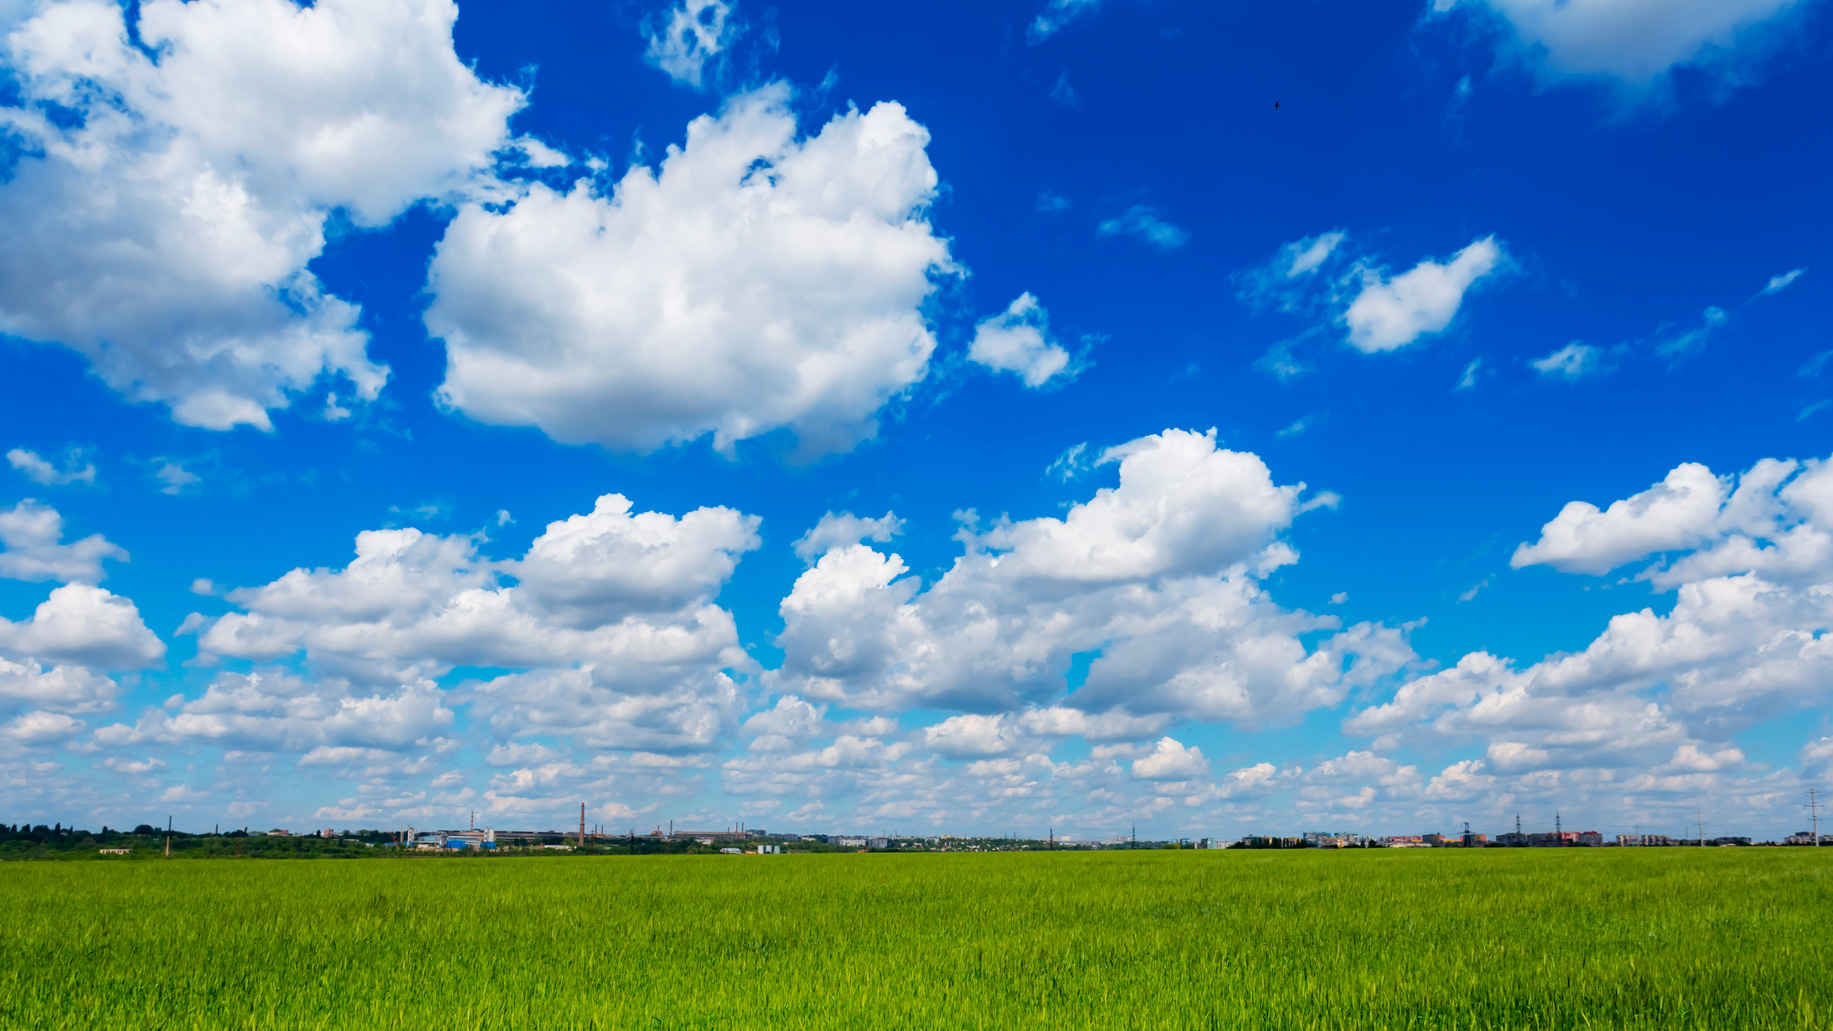 Cloud-Services-Grass-Field-Green